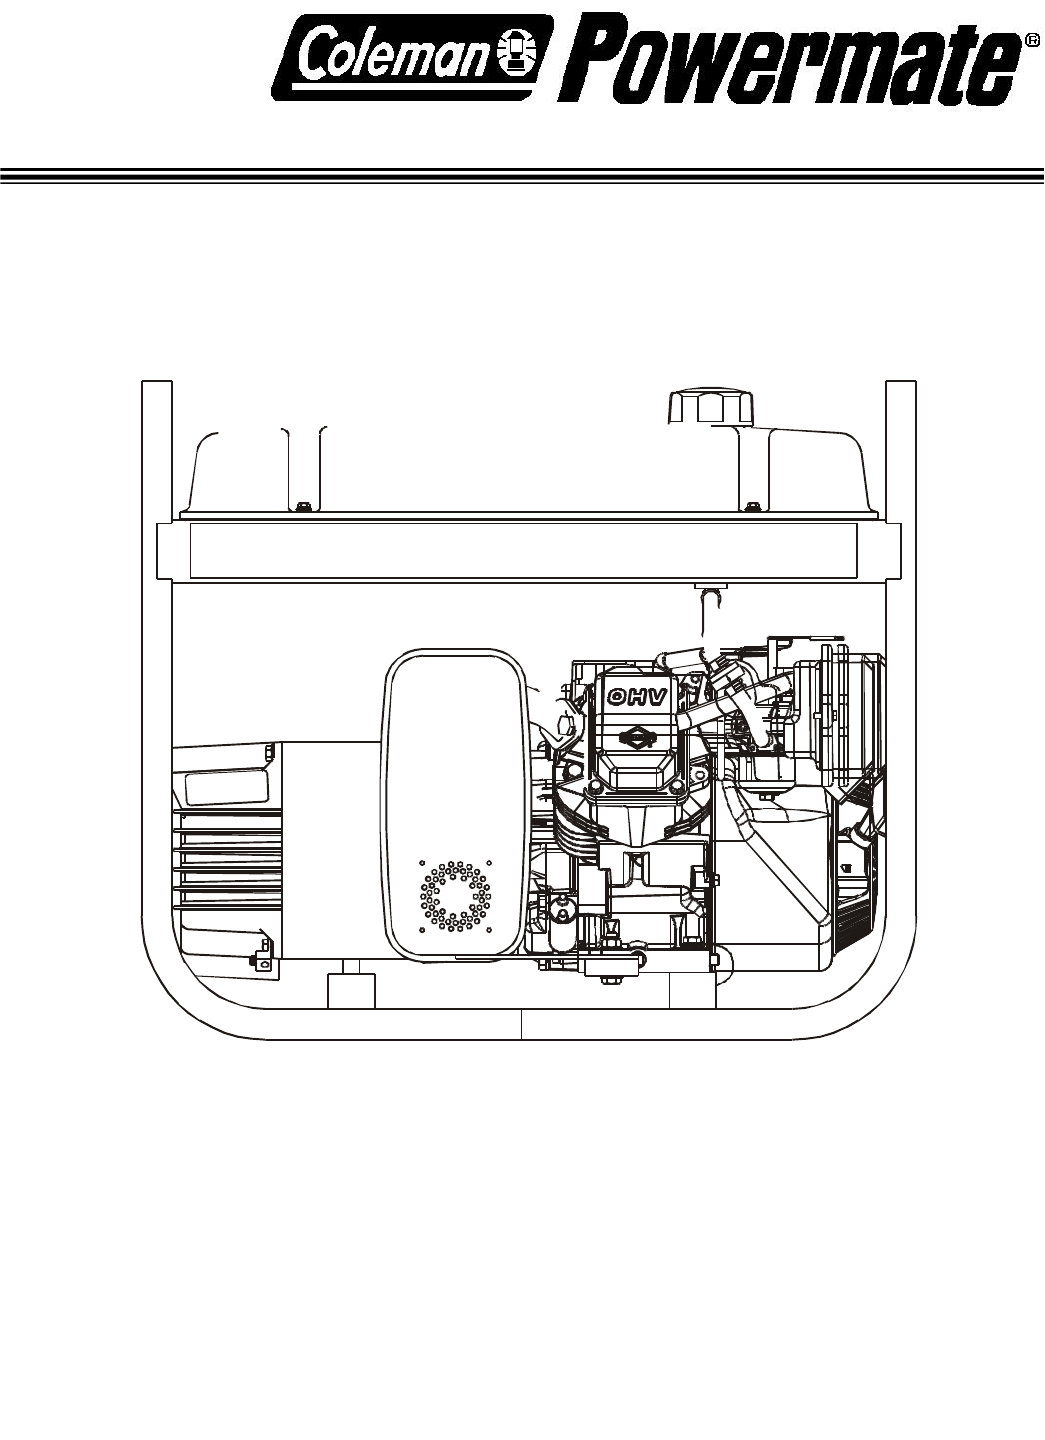 Generac Standby Generator Wiring Diagram additionally Pm0545005 1 together with Mobile Home Electric Furnace Wiring Diagram likewise Briggs And Stratton 18 Hp Engine as well Wiring Diagram 3 Pin Flasher Relay. on coleman generator wiring diagram